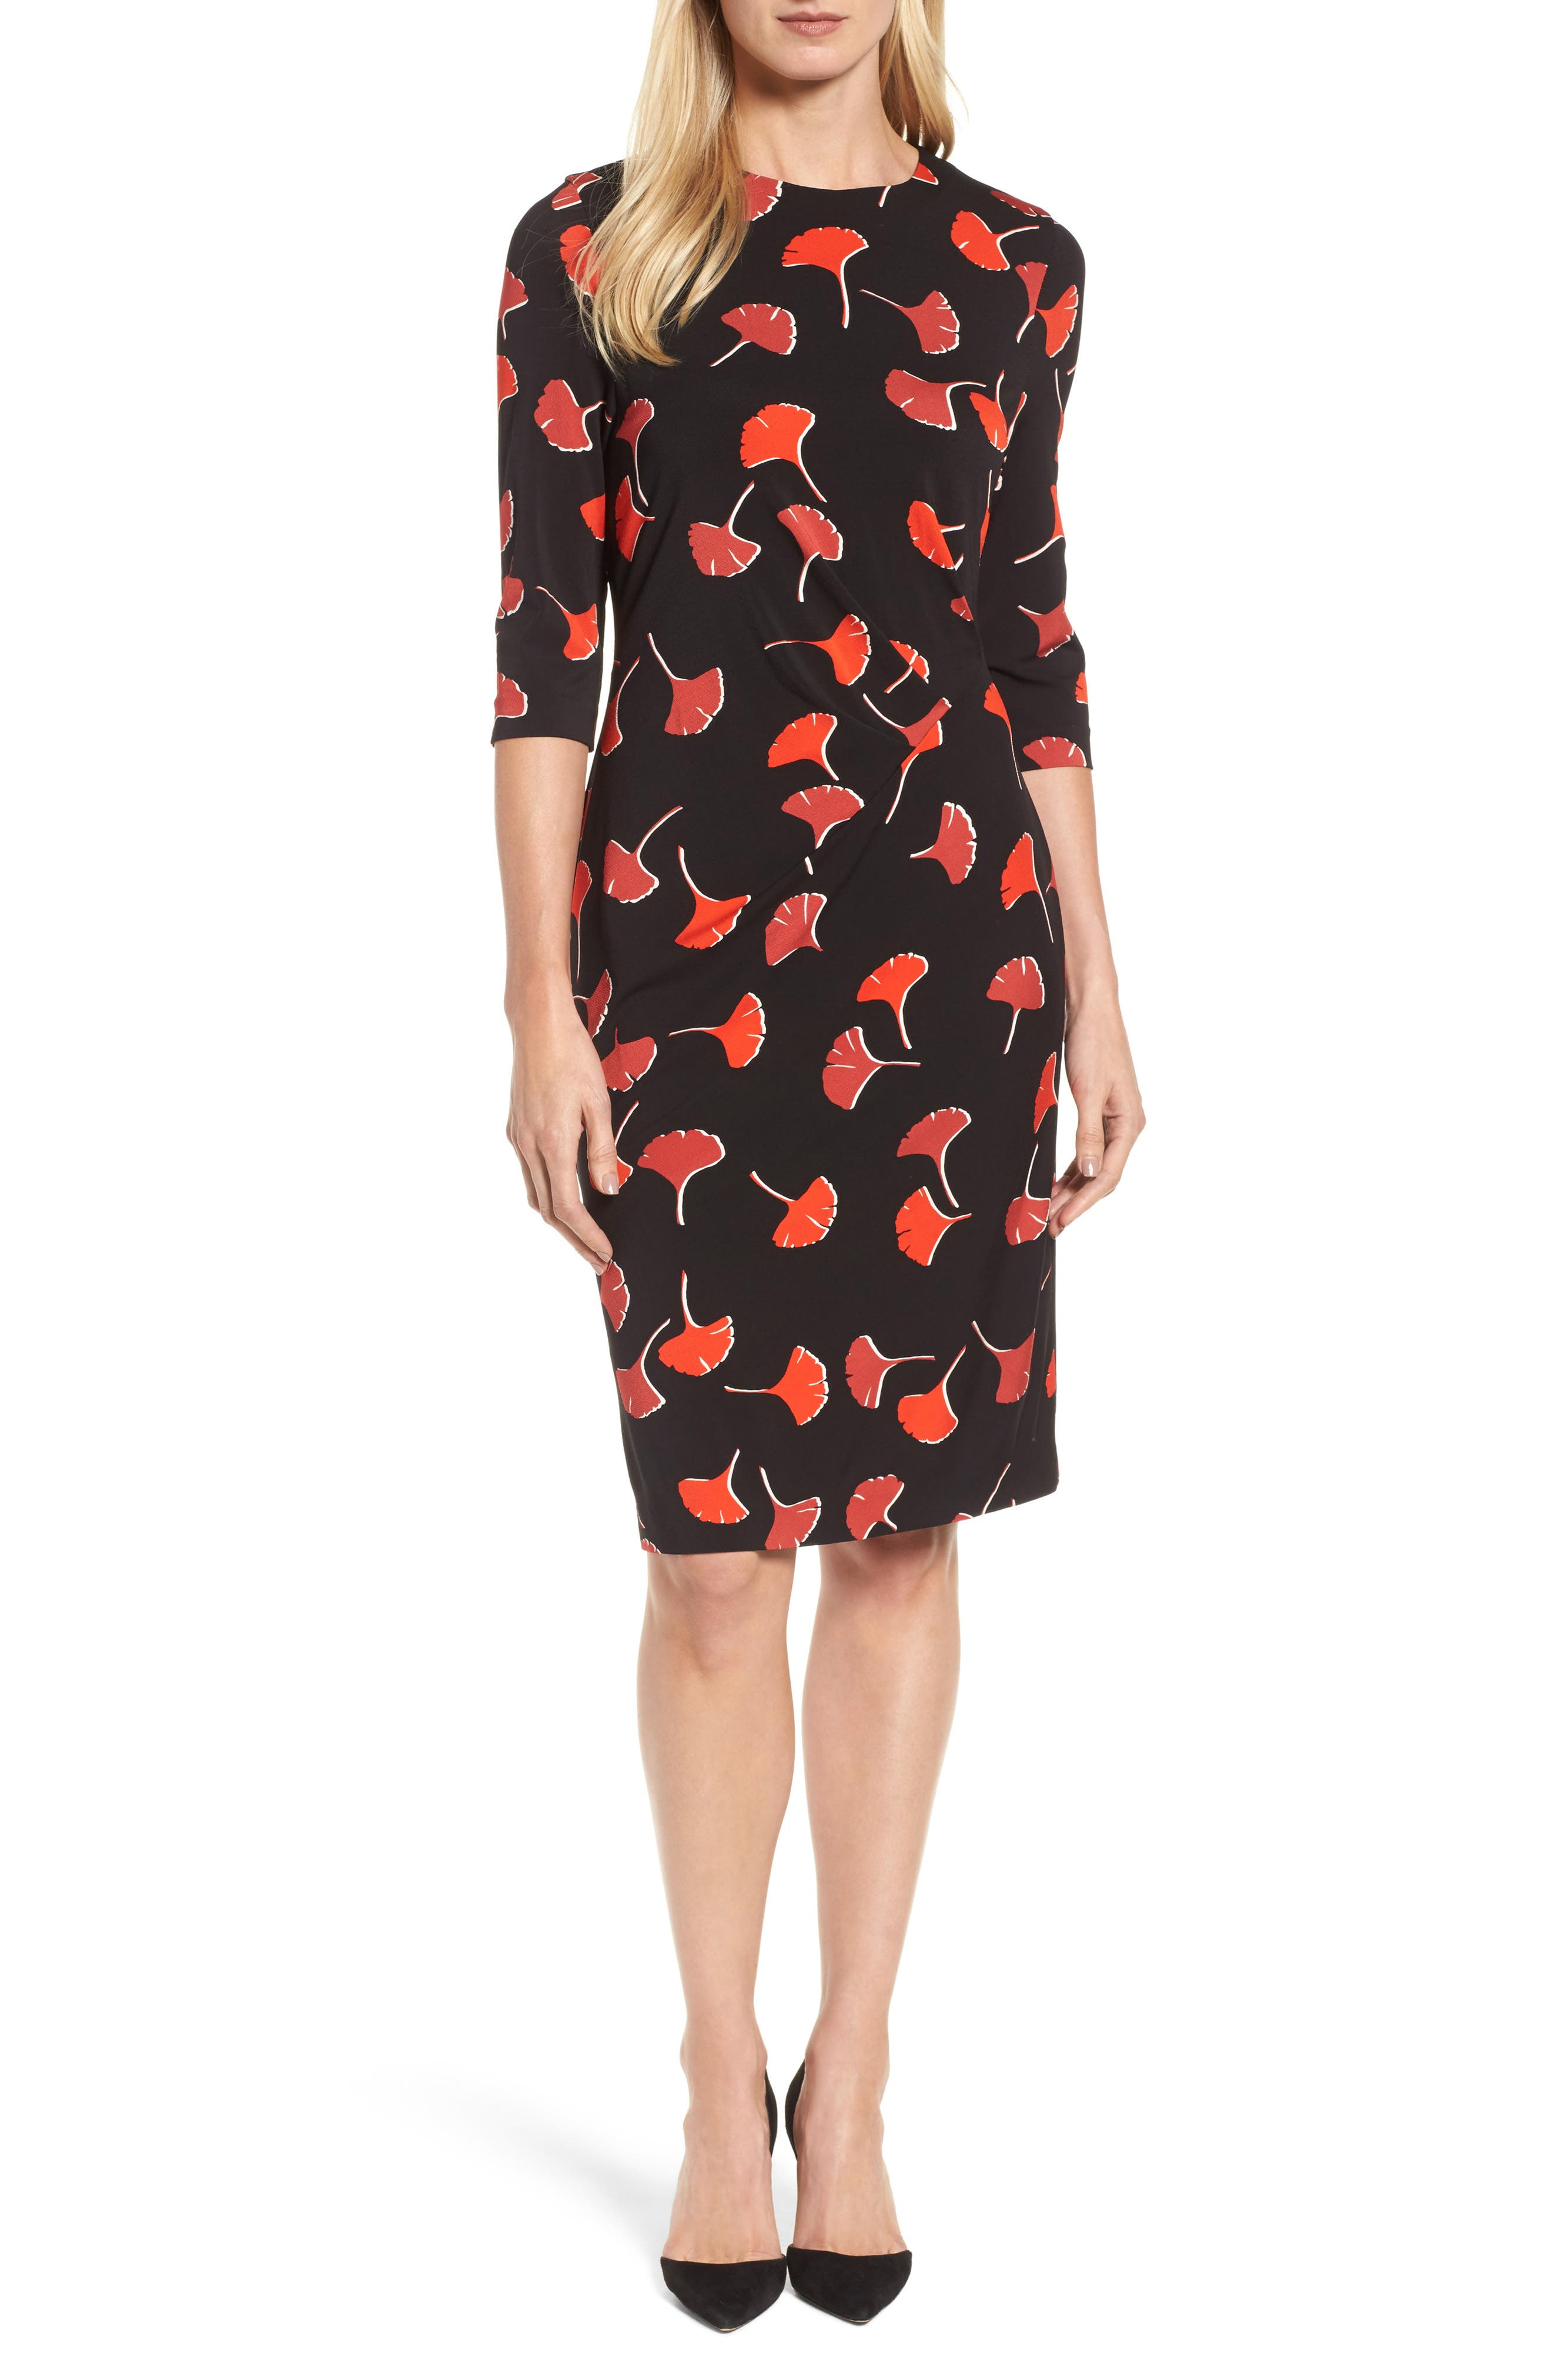 Eseona Print Sheath Dress,                             Main thumbnail 1, color,                             005